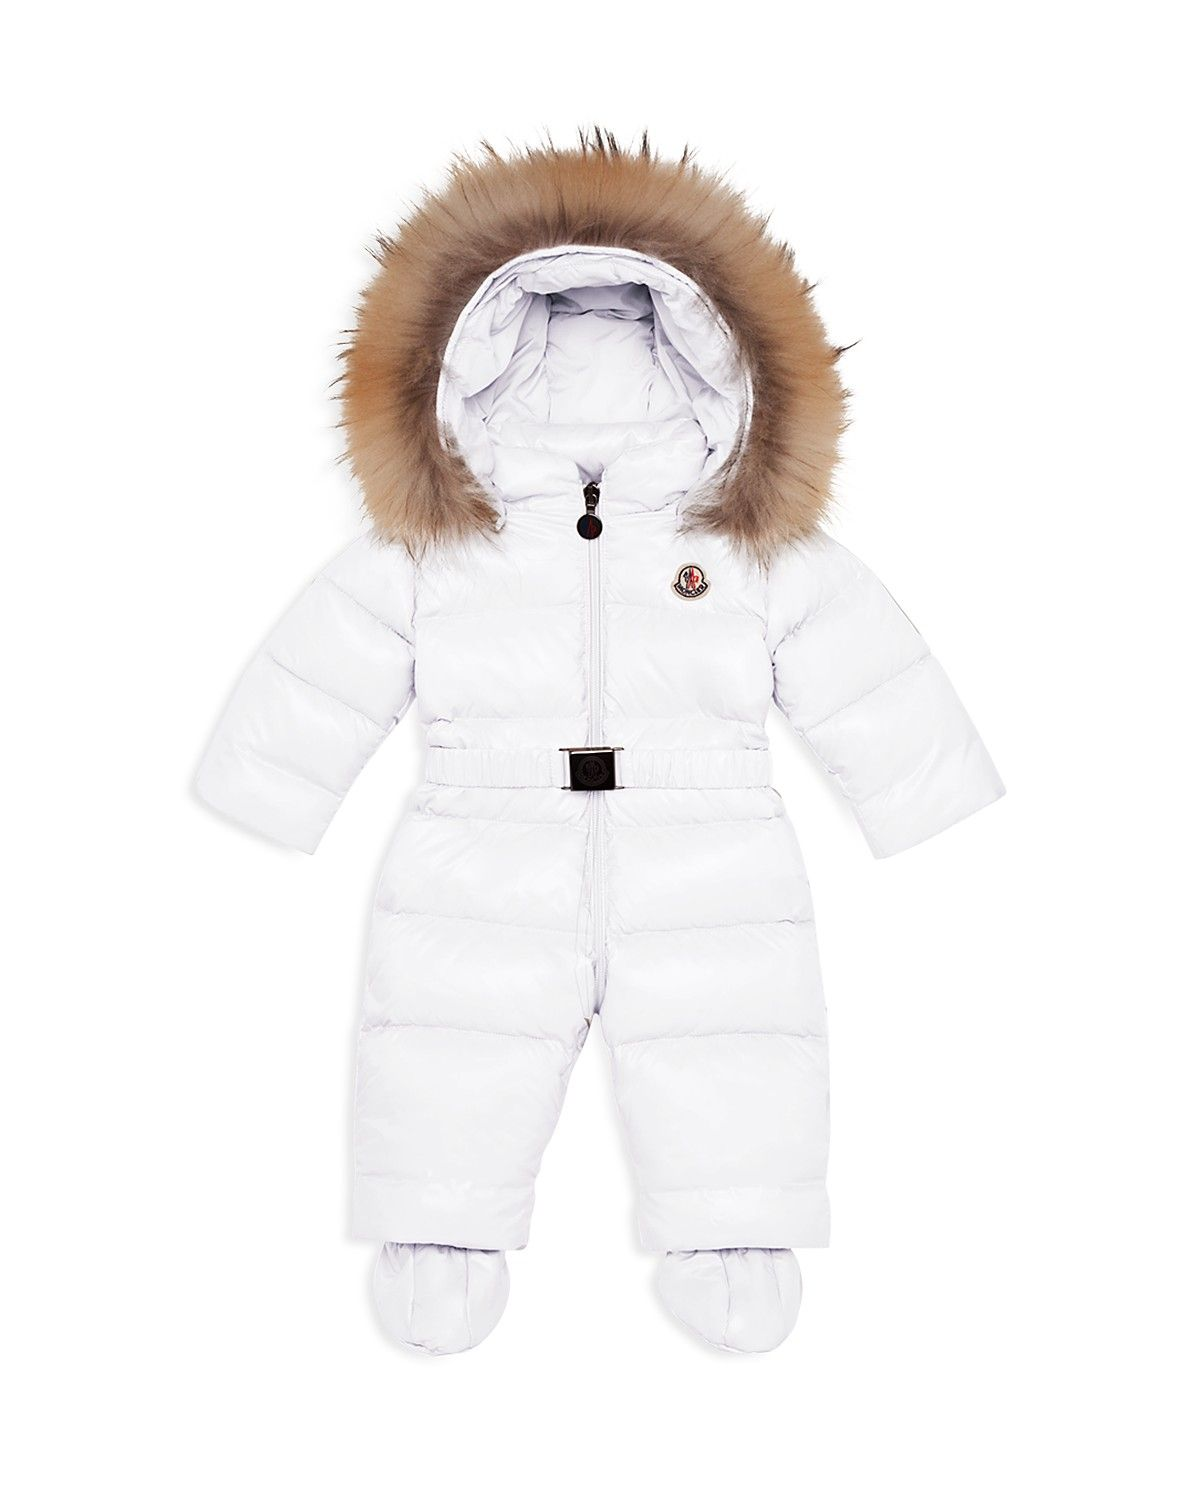 a891cba12 Moncler Infant Girls  Crystal Snowsuit - Sizes 3-12 Months